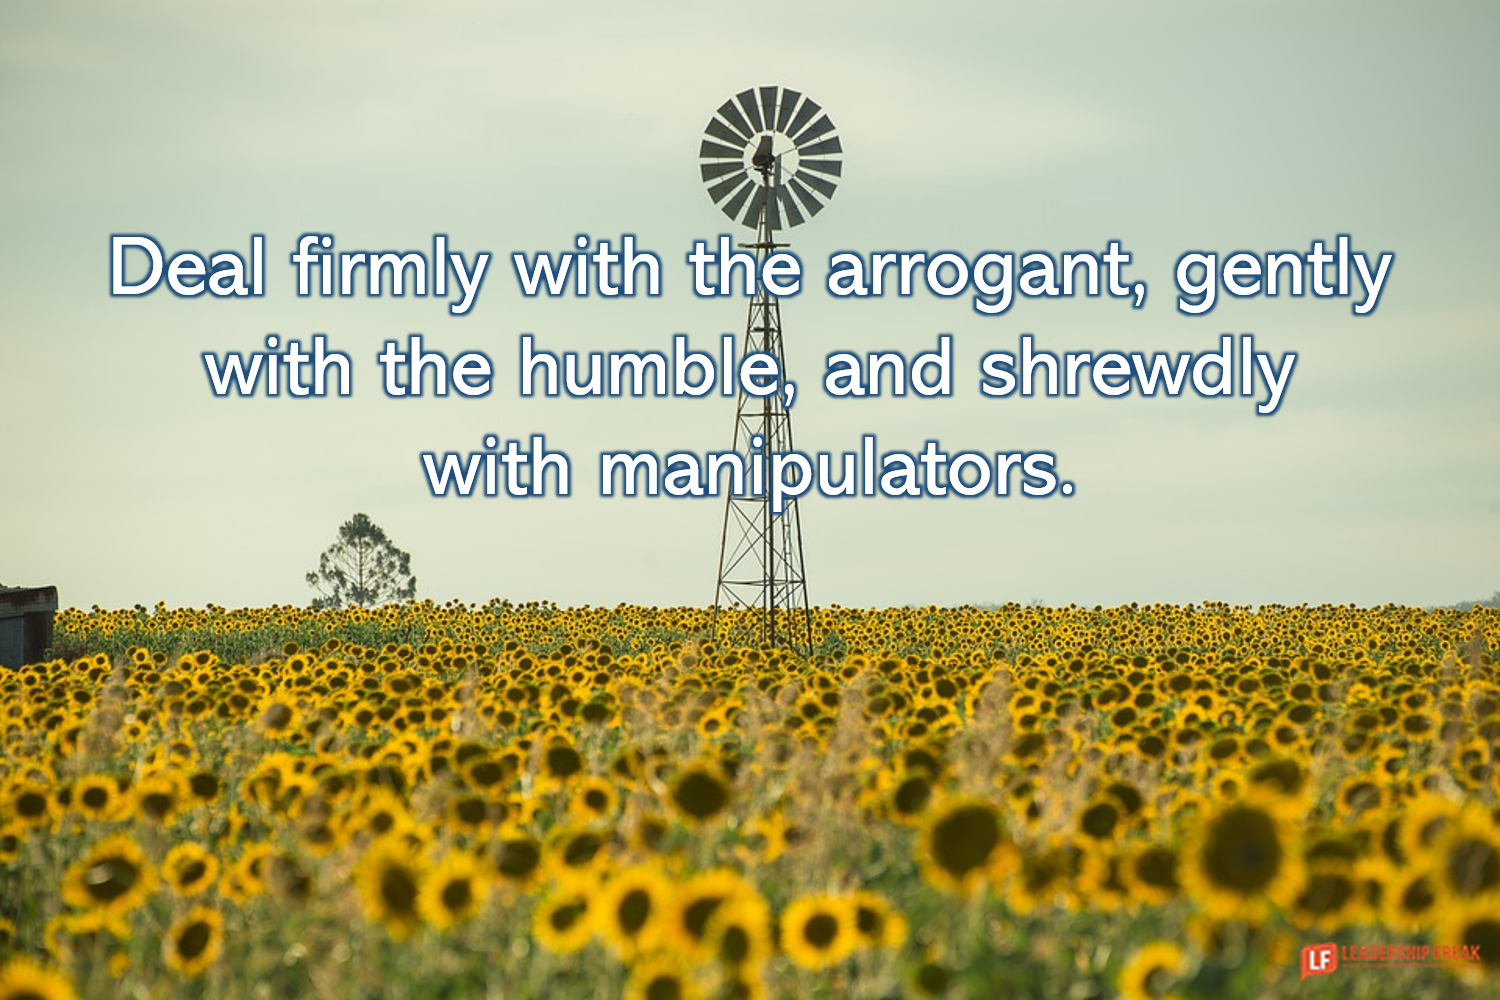 Sunflowers and windmill  Deal firmly with the arrogant, gently with the humble, and shrewdly with manipulators.